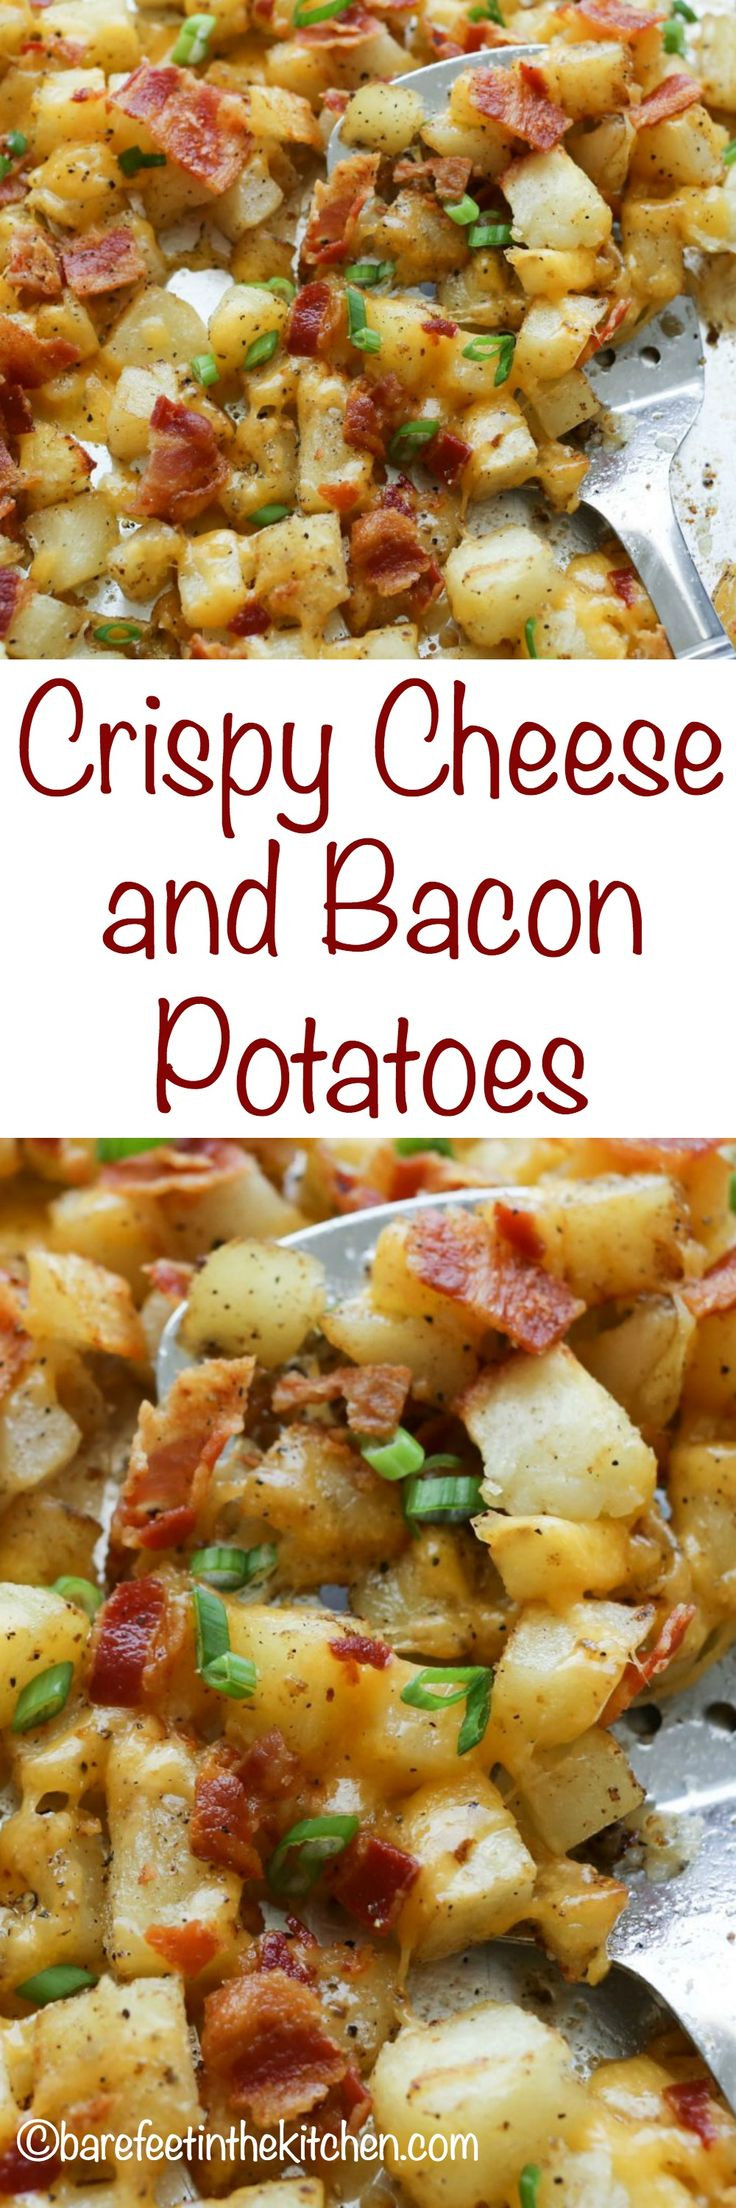 Best 46 side dishes ideas on pinterest potatoes drink and rezepte crispy cheese and bacon potatoes are great for breakfast lunch or dinner get forumfinder Gallery